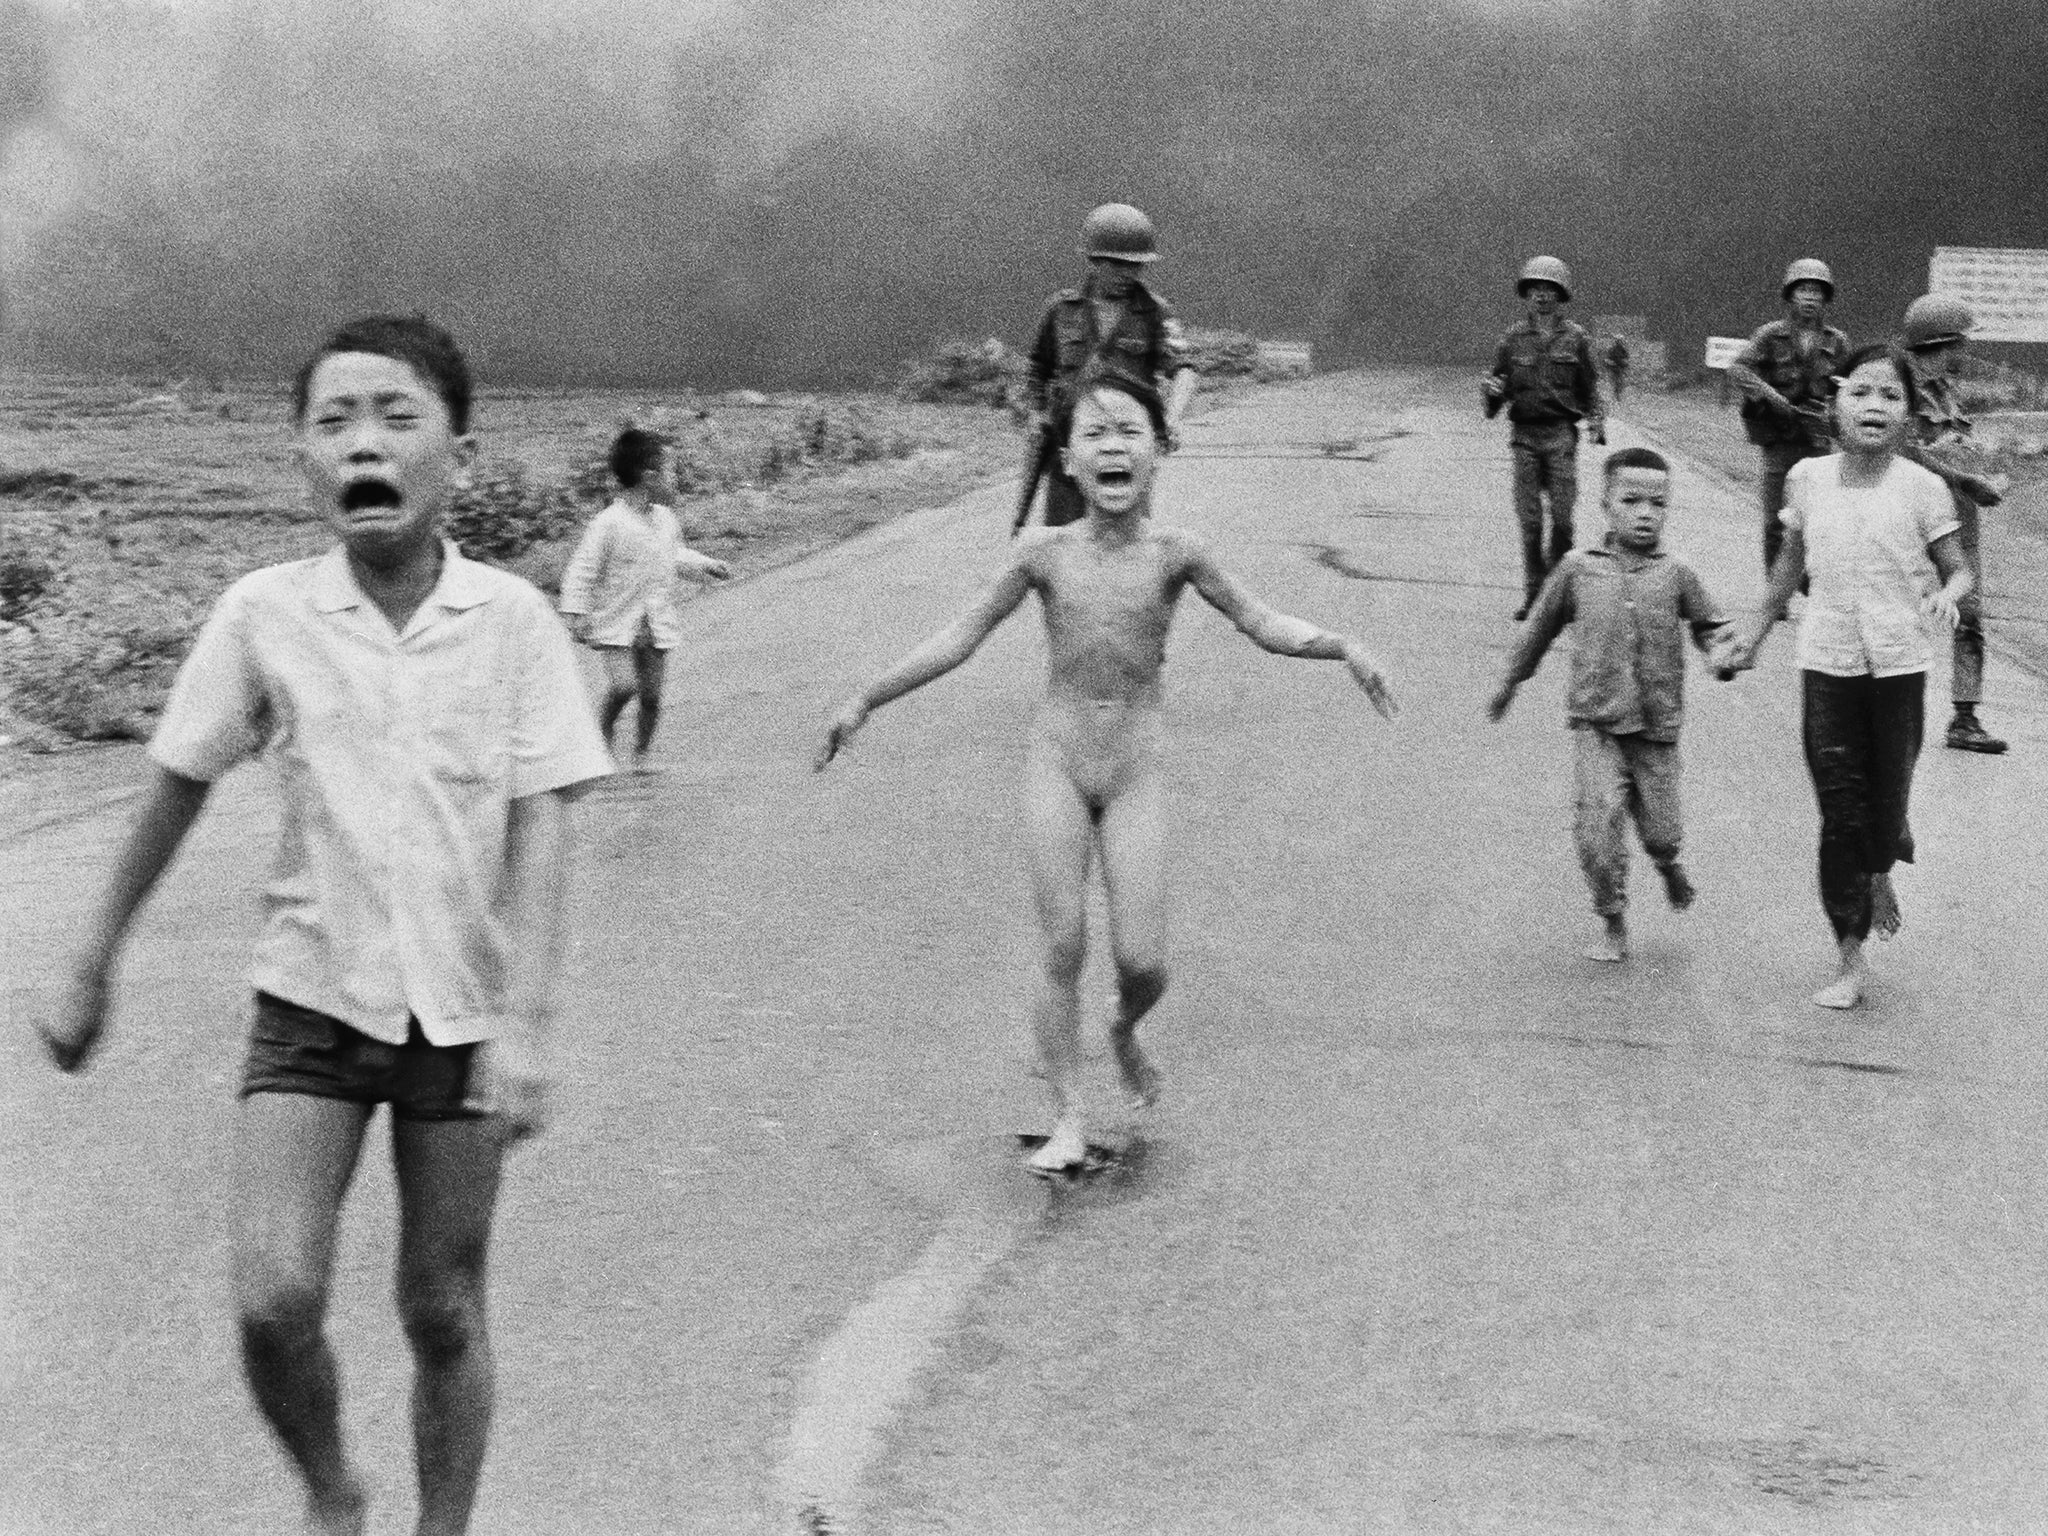 librechbtnnmzoa7 src nude 14 Why the 'napalm girl' Facebook post triggered worldwide debate